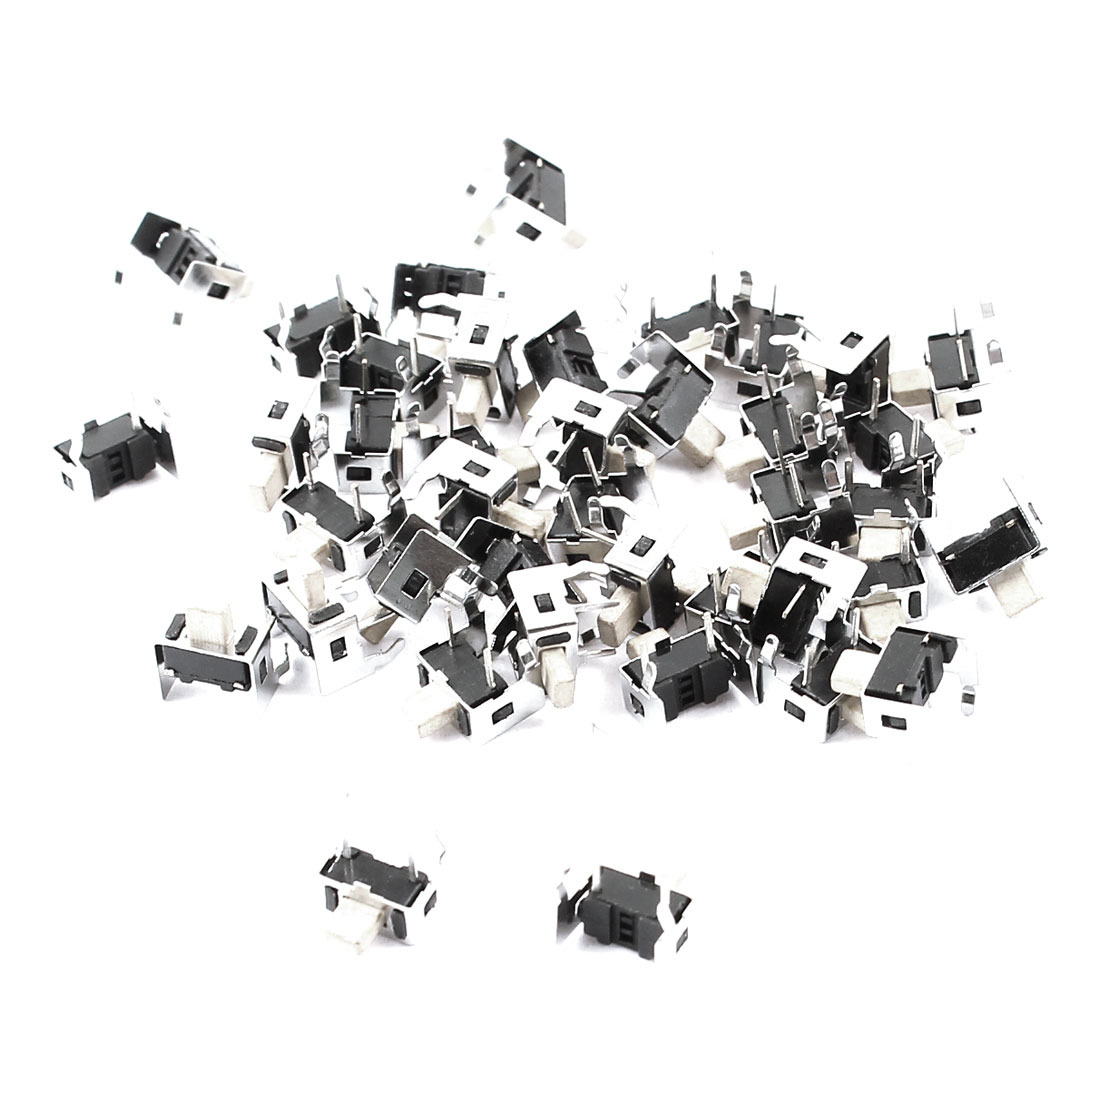 40pcs DIP 2 Terminals Right Angle Momentary SPST Push Button Tactile Switch 8x7x7mm